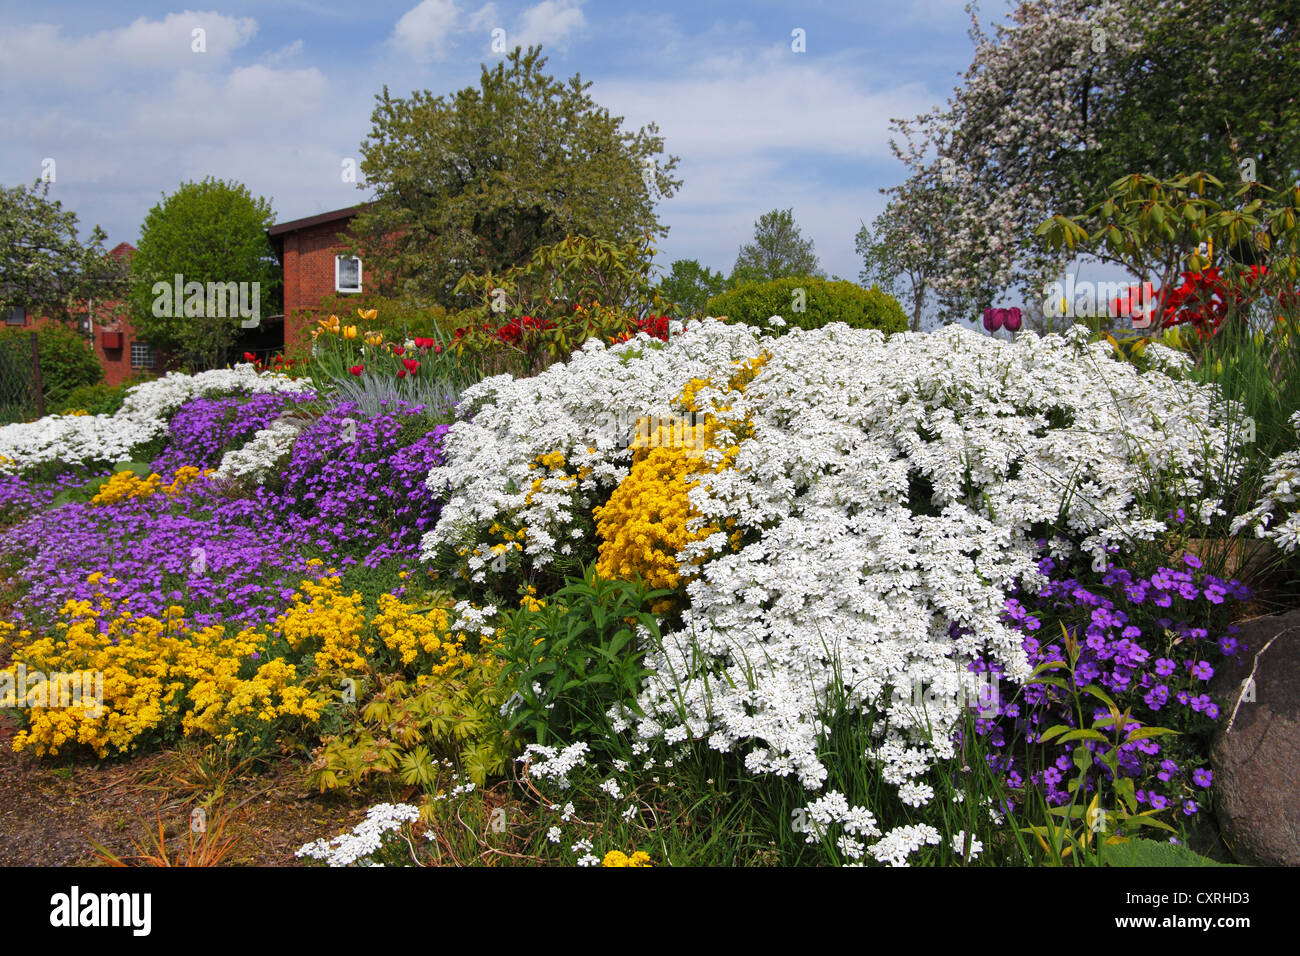 Rural garden in the spring with herbaceous plants like white Evergreen Candytuft (Iberis sempervirens), yellow Basket - Stock Image